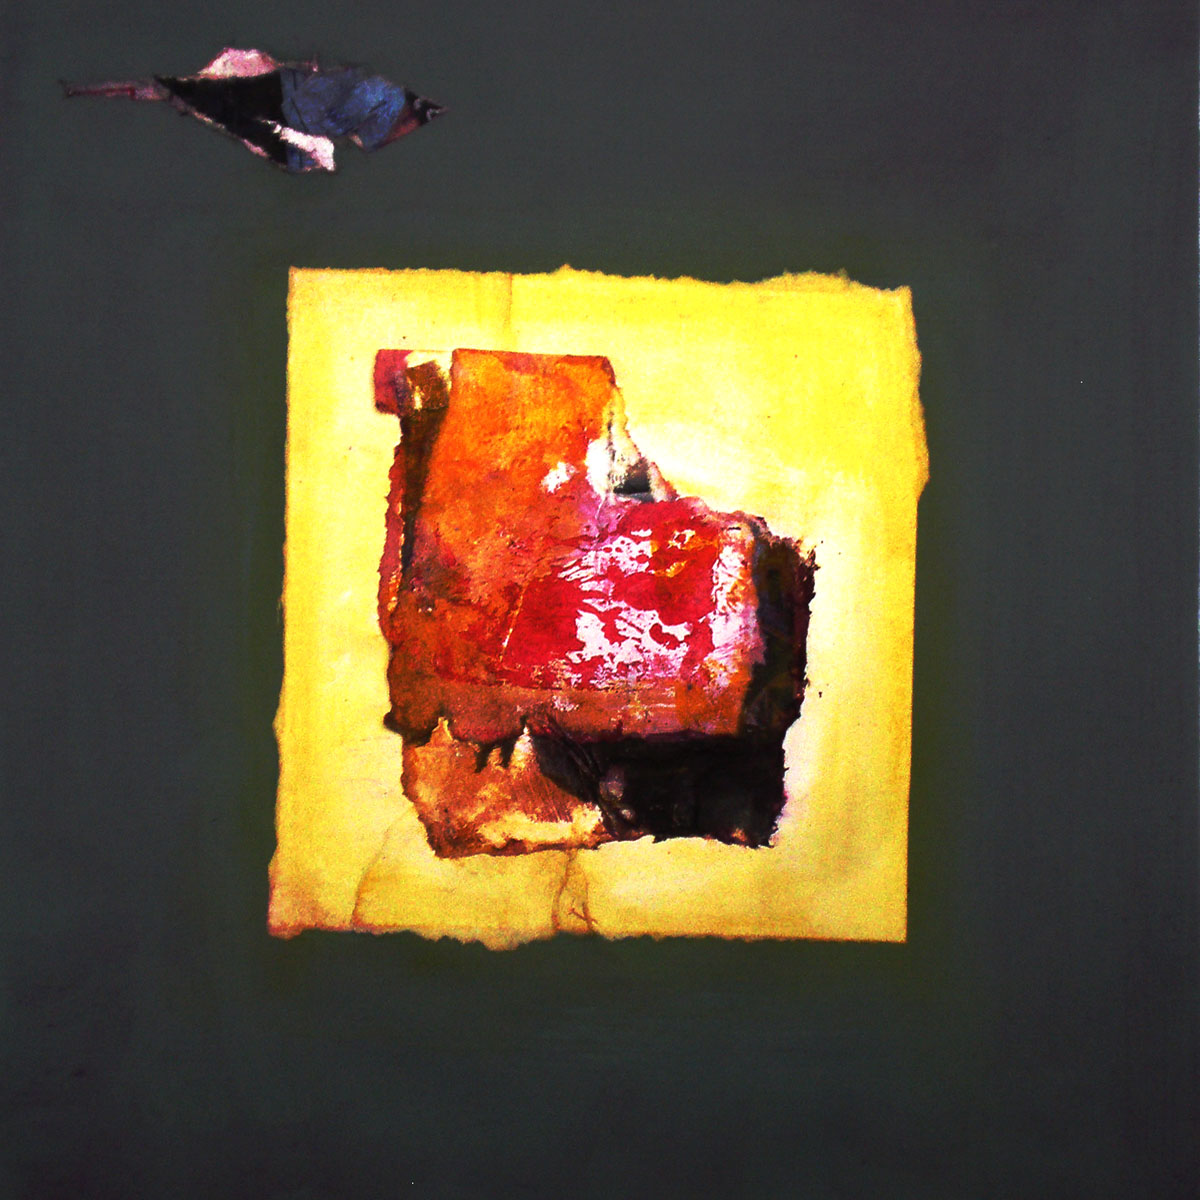 "Little Bird,  2014, digital print, monotype and collage., 12"" x 12"" (30cm x 30cm), Private Collection, Paris, France"